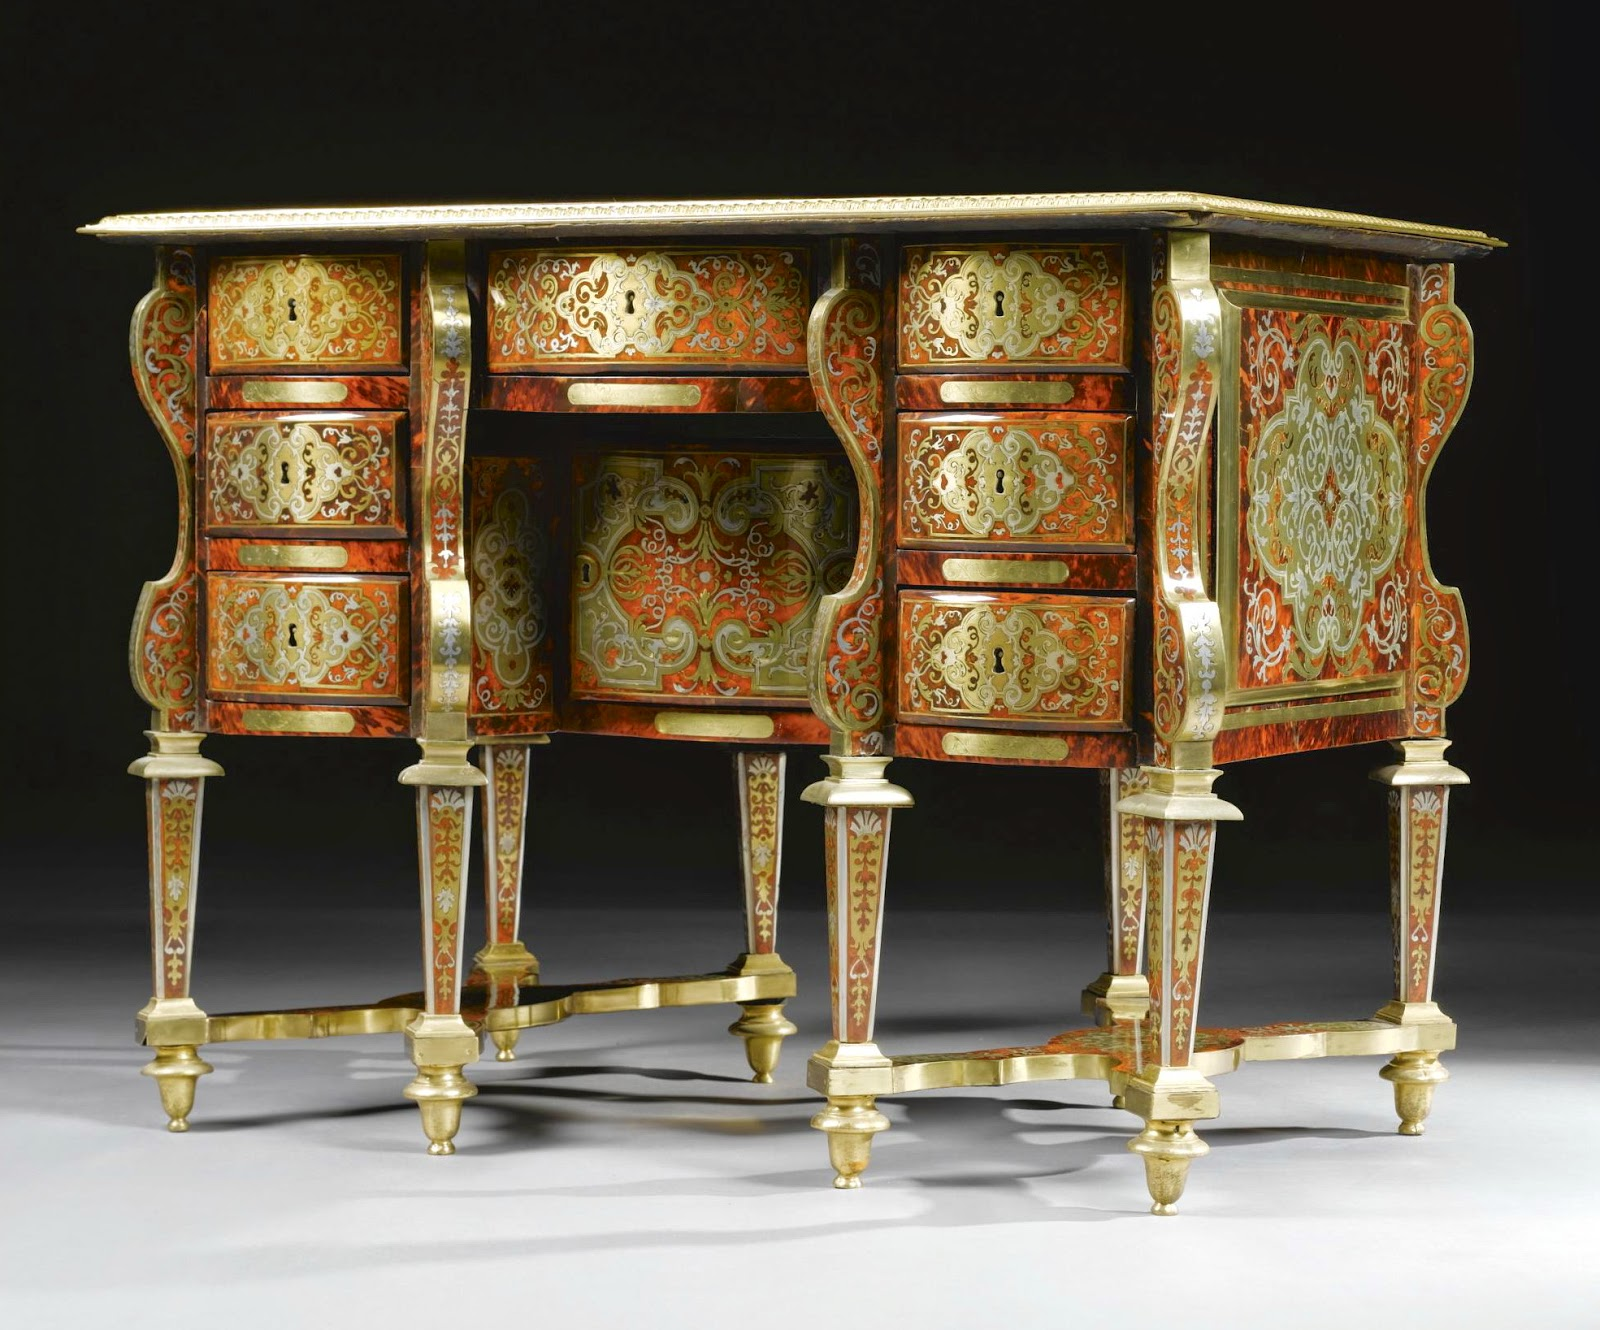 A BRASS AND PEWTER INLAID TURTLESHELL PREMIÈRE-PARTIE BOULLE MARQUETRY BUREAU MAZARIN IN THE MANNER OF ALEXANDRE-JEAN OPPENORDT,LOUIS XIV, CIRCA 1700, Sotheby's